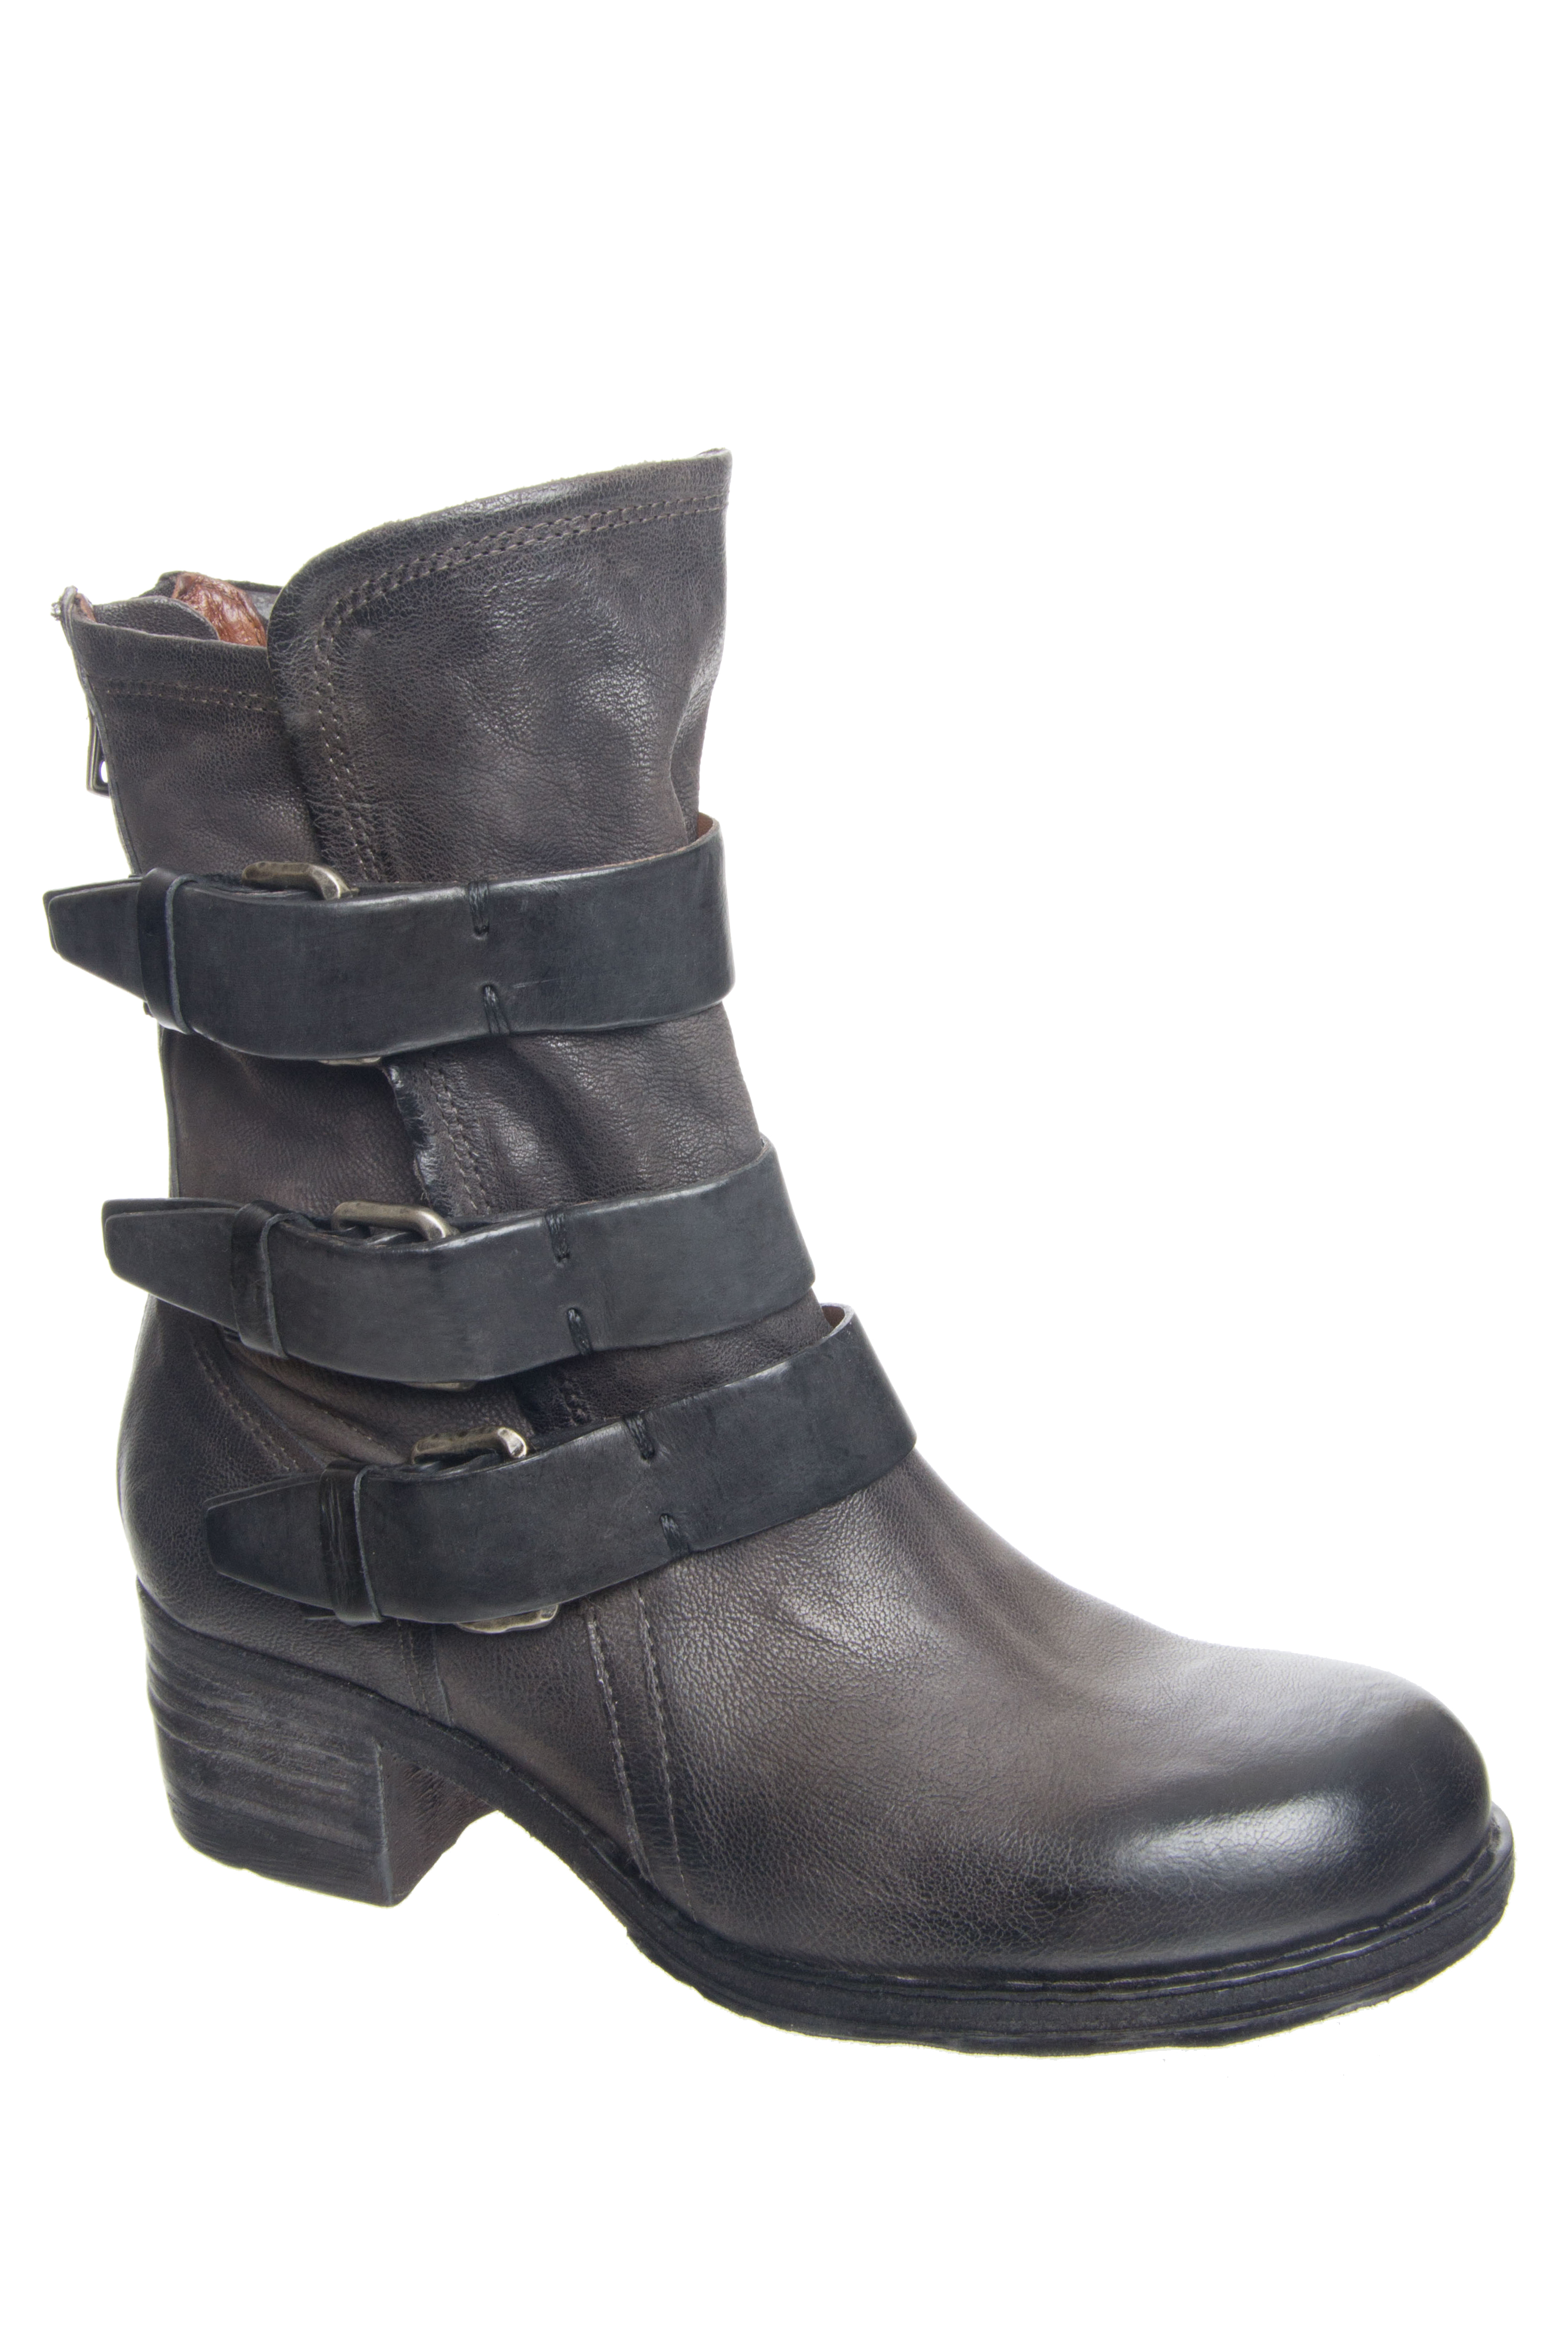 A.S.98 Xyrus Mid Heel Boots - Smoke